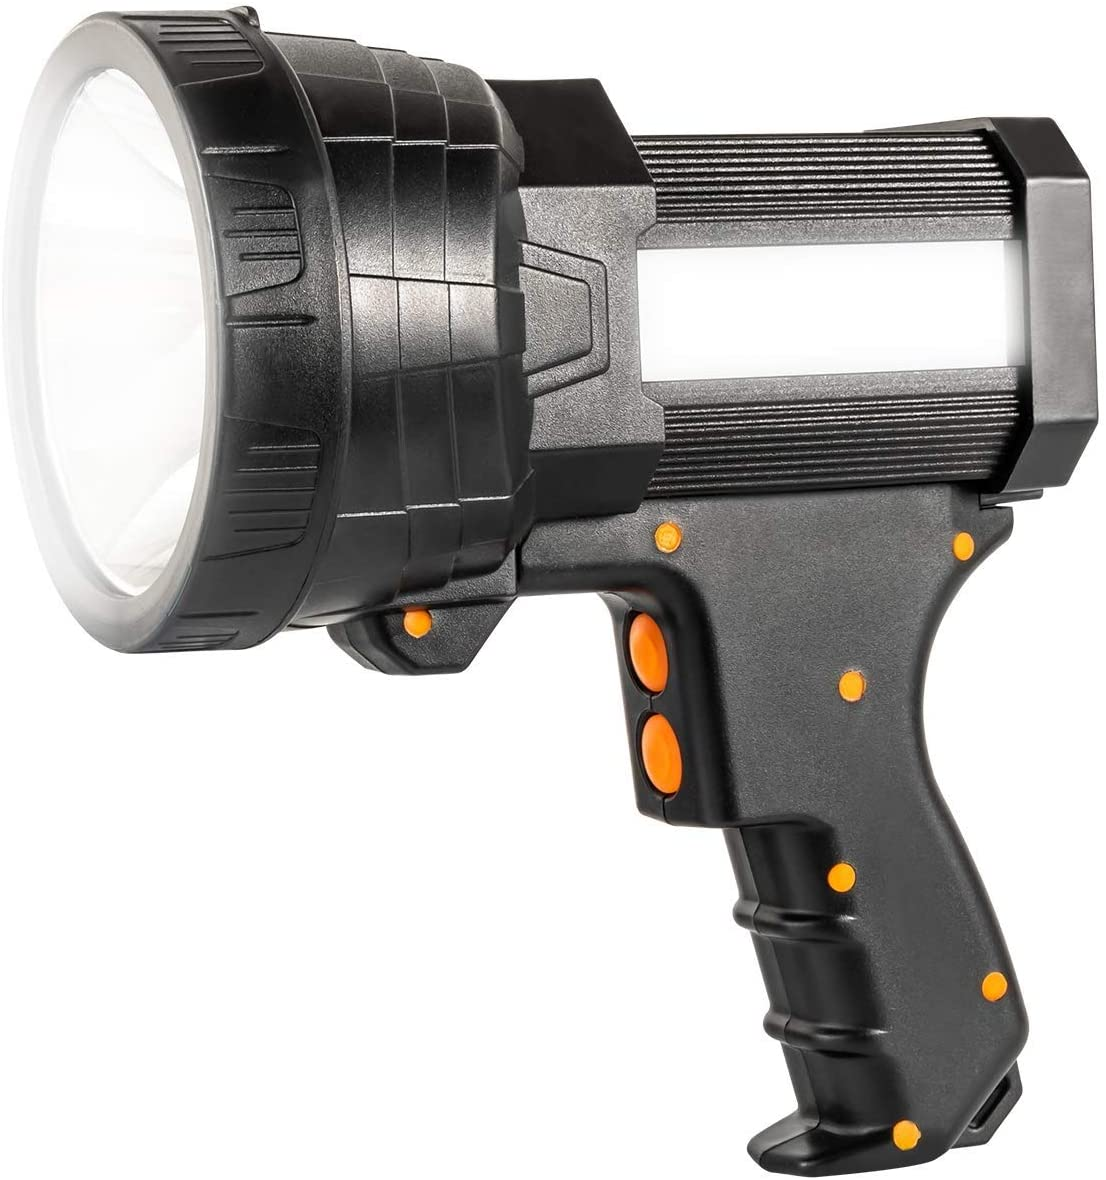 HWZGSLC LED Rechargeable Spotlight Flashlight with 6000 Lumen LED, 9600mAh Long Lasting Portable Searchlight Flood Light 3 Light Modes Side Tactical Torch with USB Output